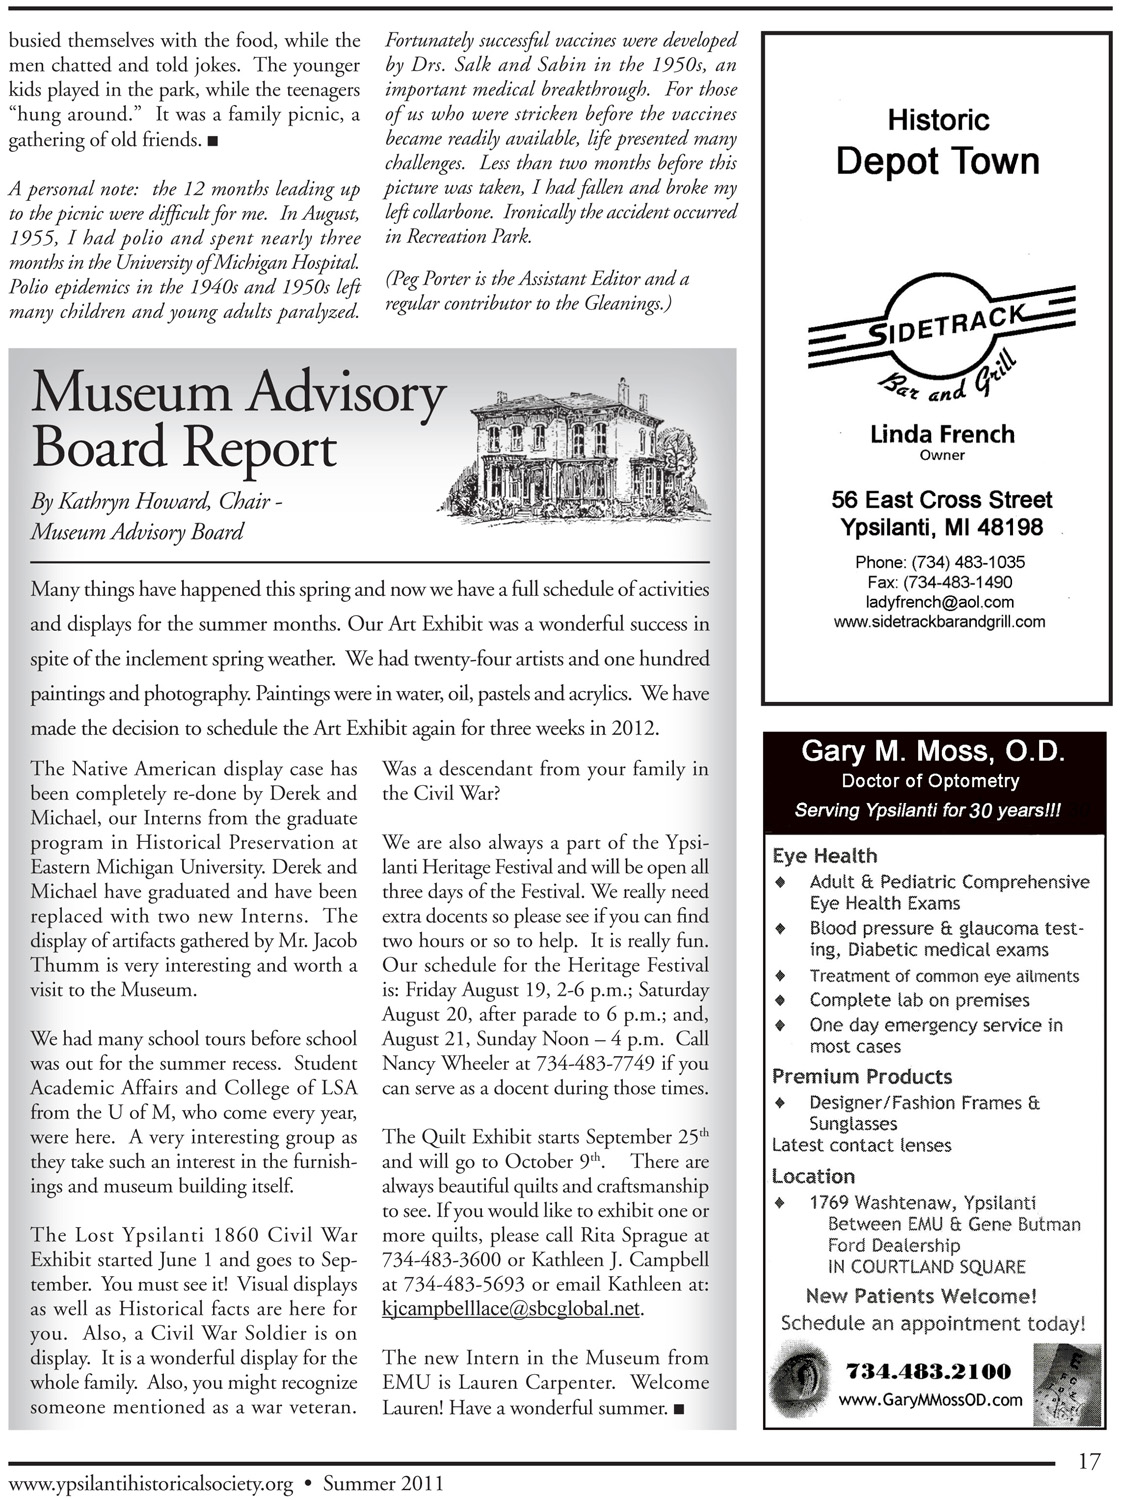 Museum Advisory Board Report image